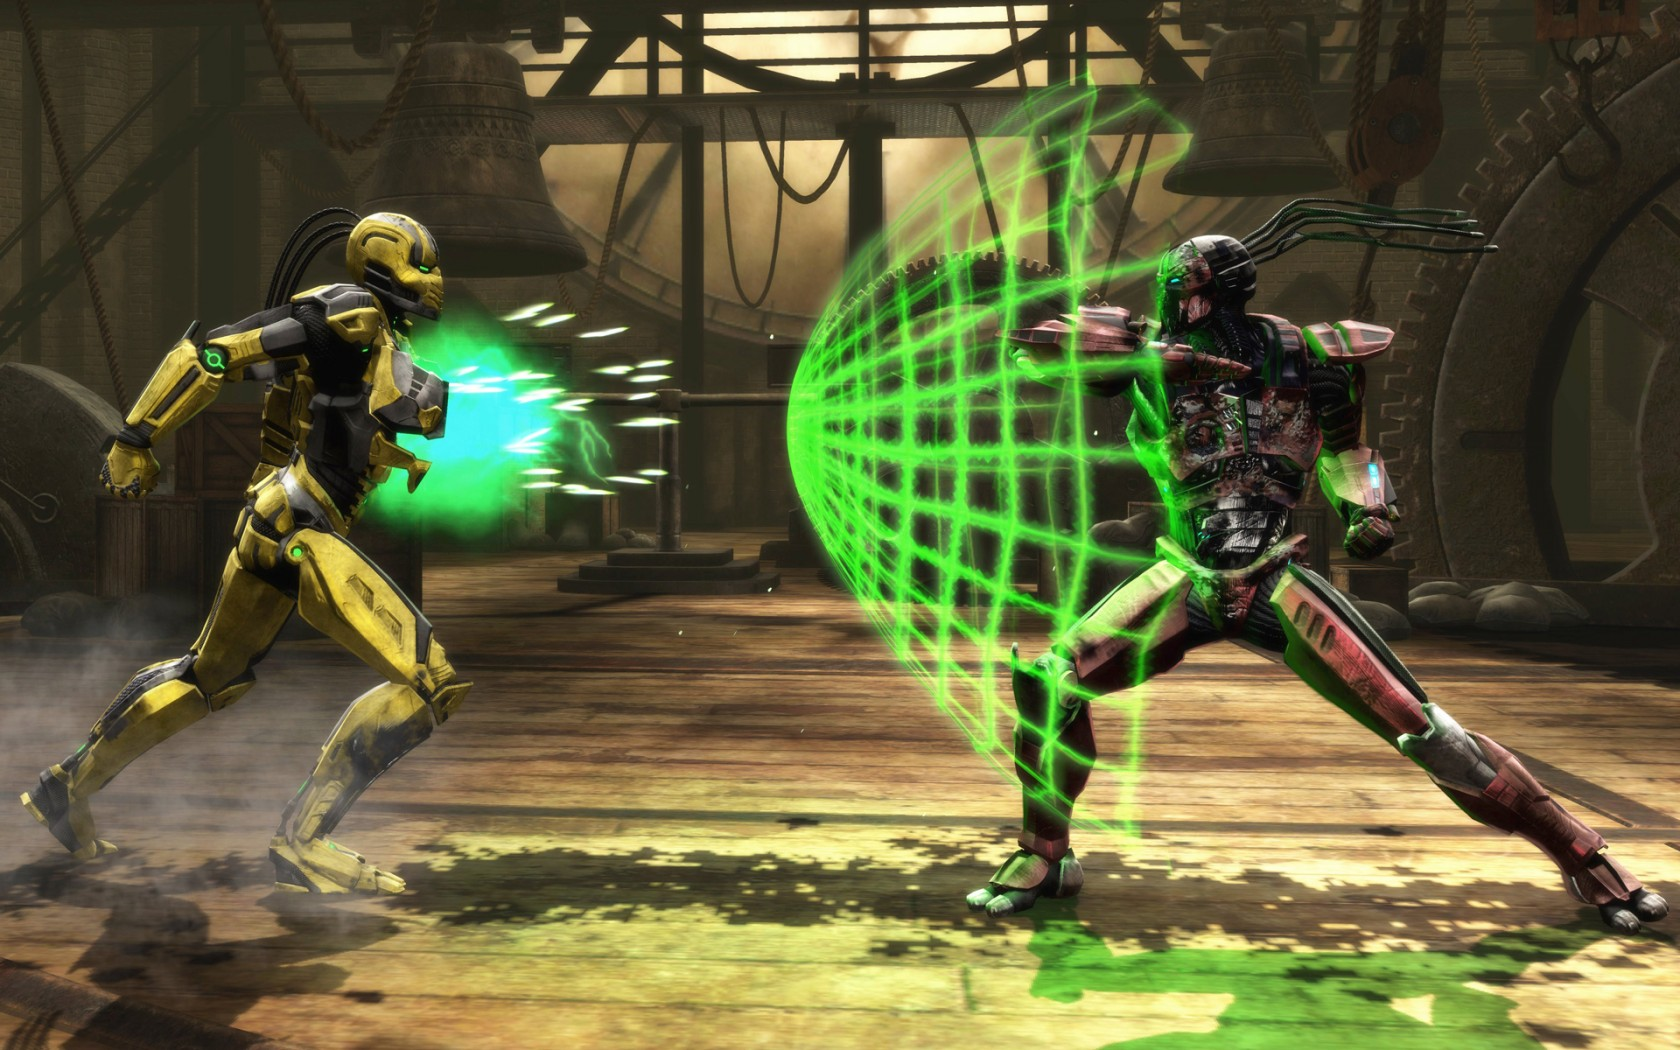 Mortal Kombat Wallpaper Sektor And Cyrax Mortal Kombat Games